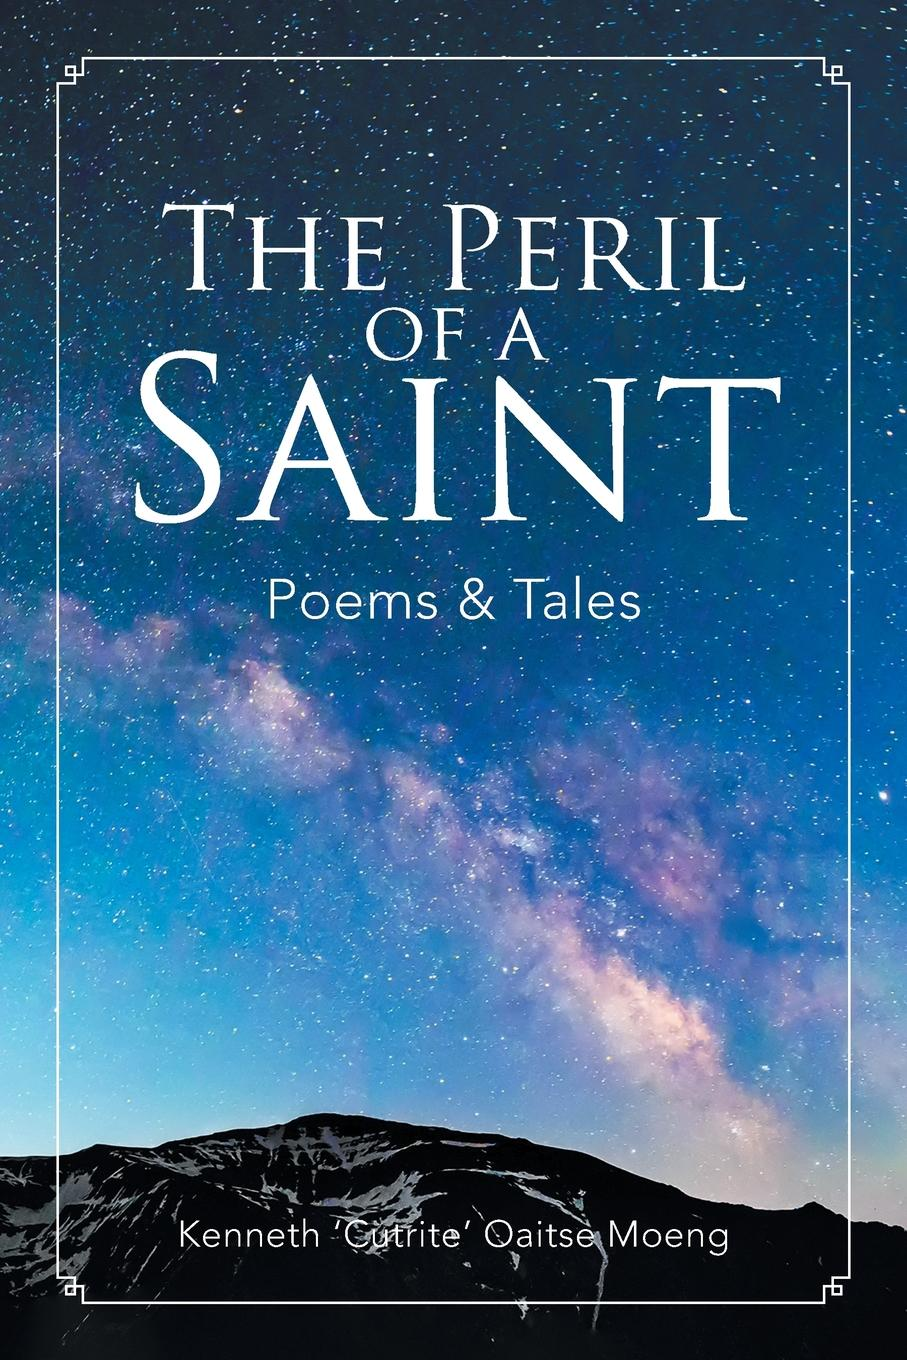 Kenneth 'Cutrite' Oaitse Moeng The Peril of a Saint. Poems and Tales journey into imagination with figment